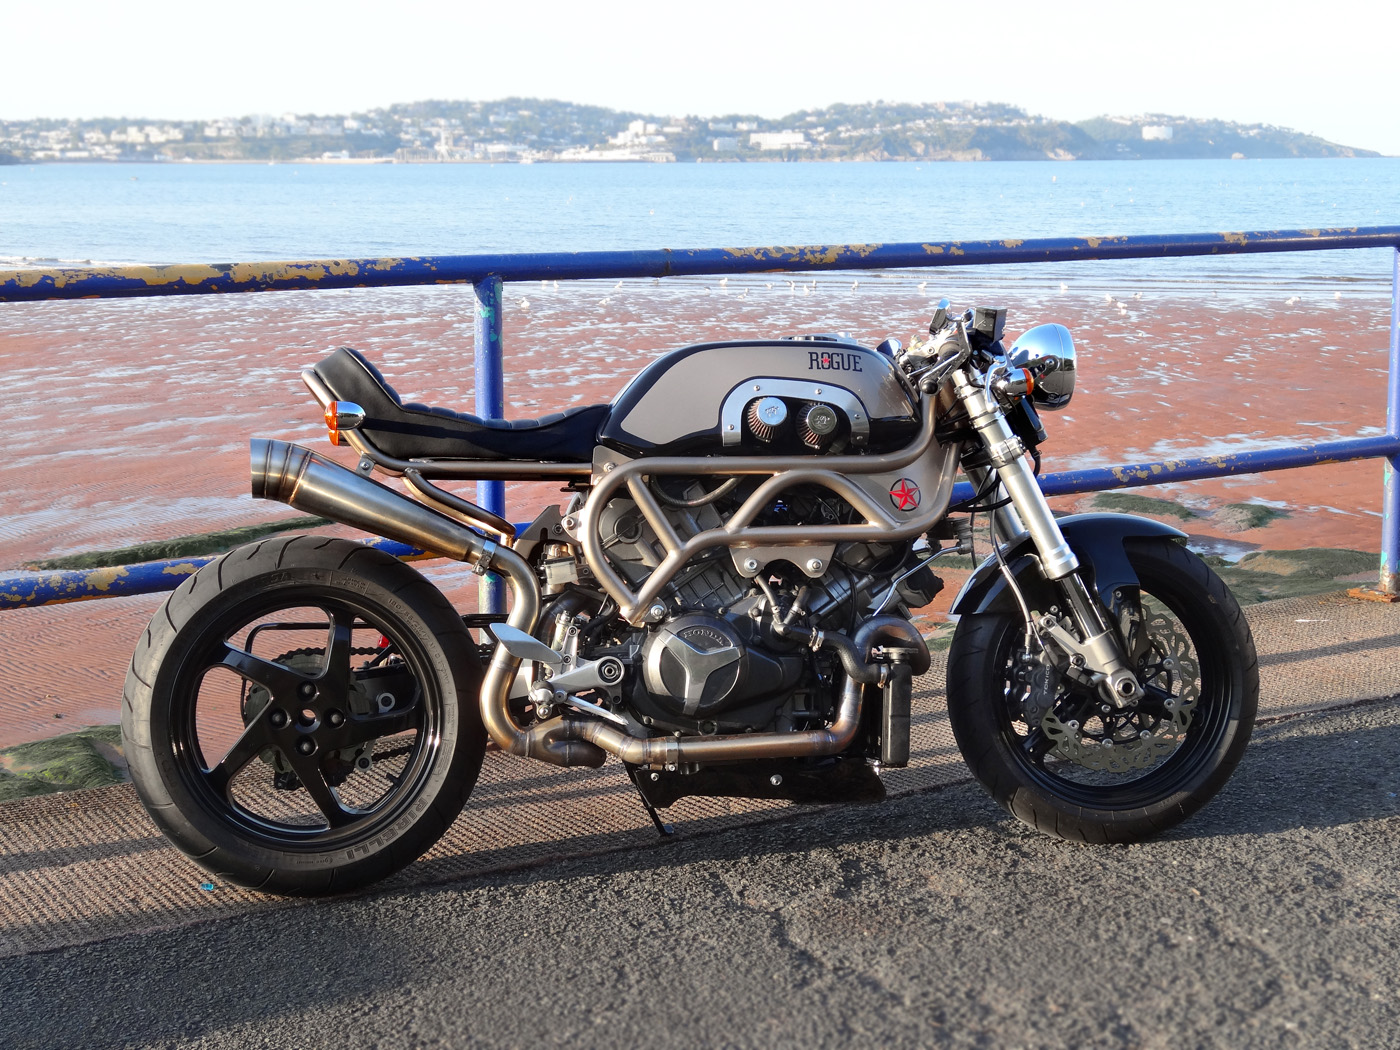 This Insane Custom Honda Vtr Will Blow Your Mind